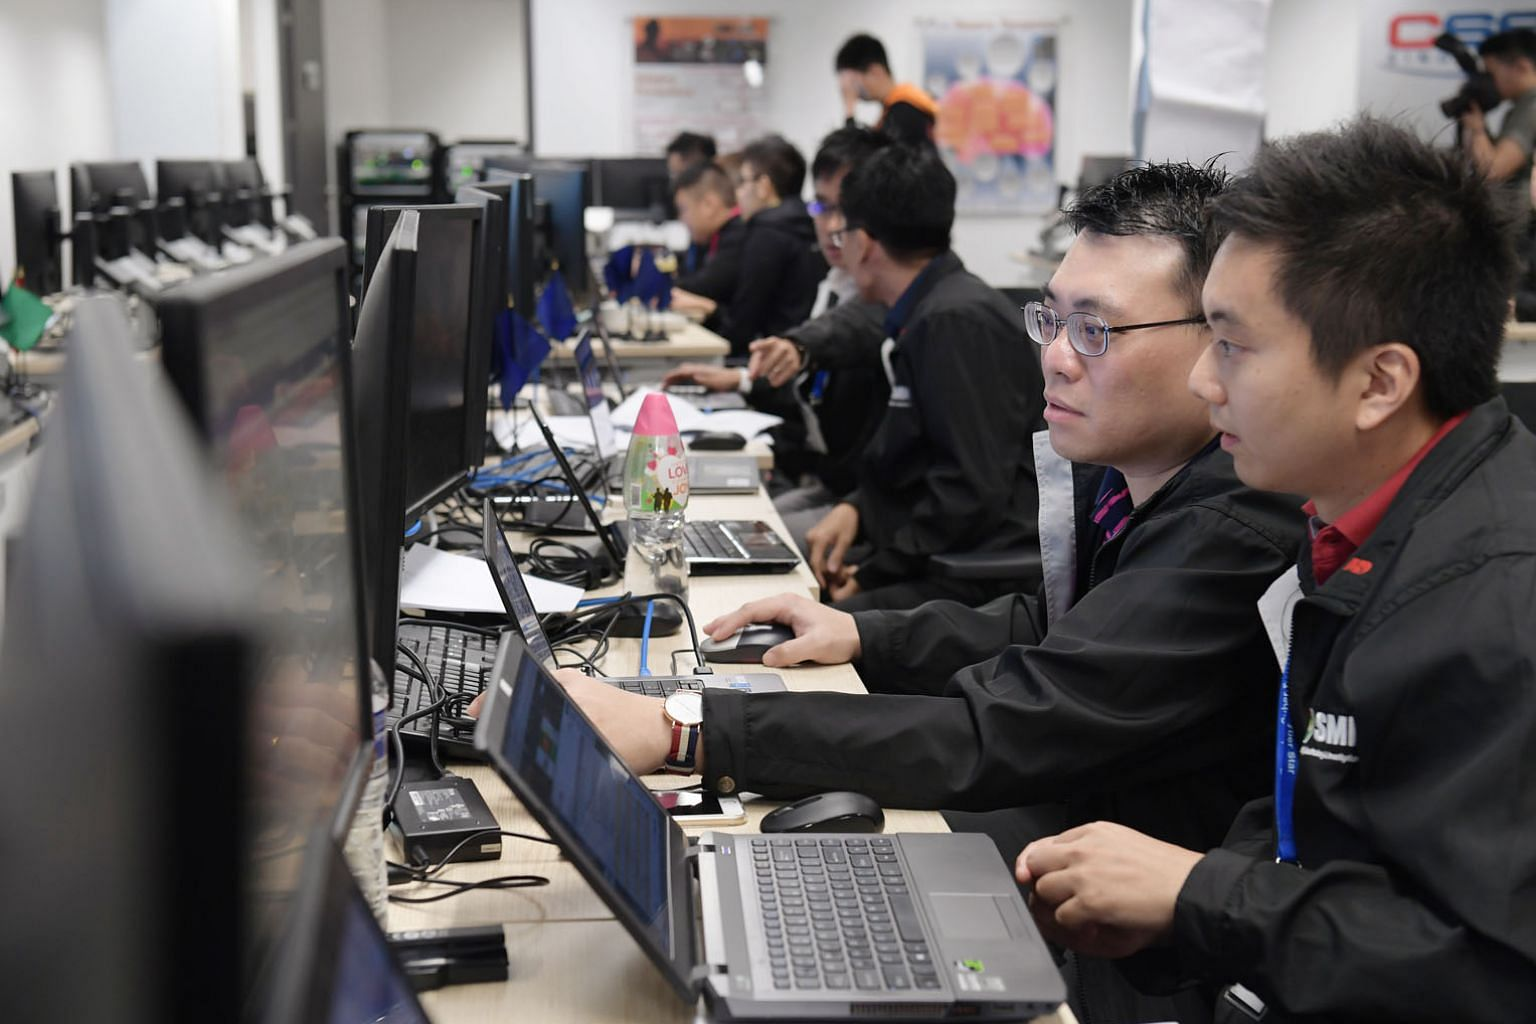 Singapore was ranked No. 1 on the 2017 Global Cyber-security Index, and while the Republic has led commendable initiatives in developing the Asean Cyber Capacity Programme, the region still lacks a collaborative education strategy, says the writer.